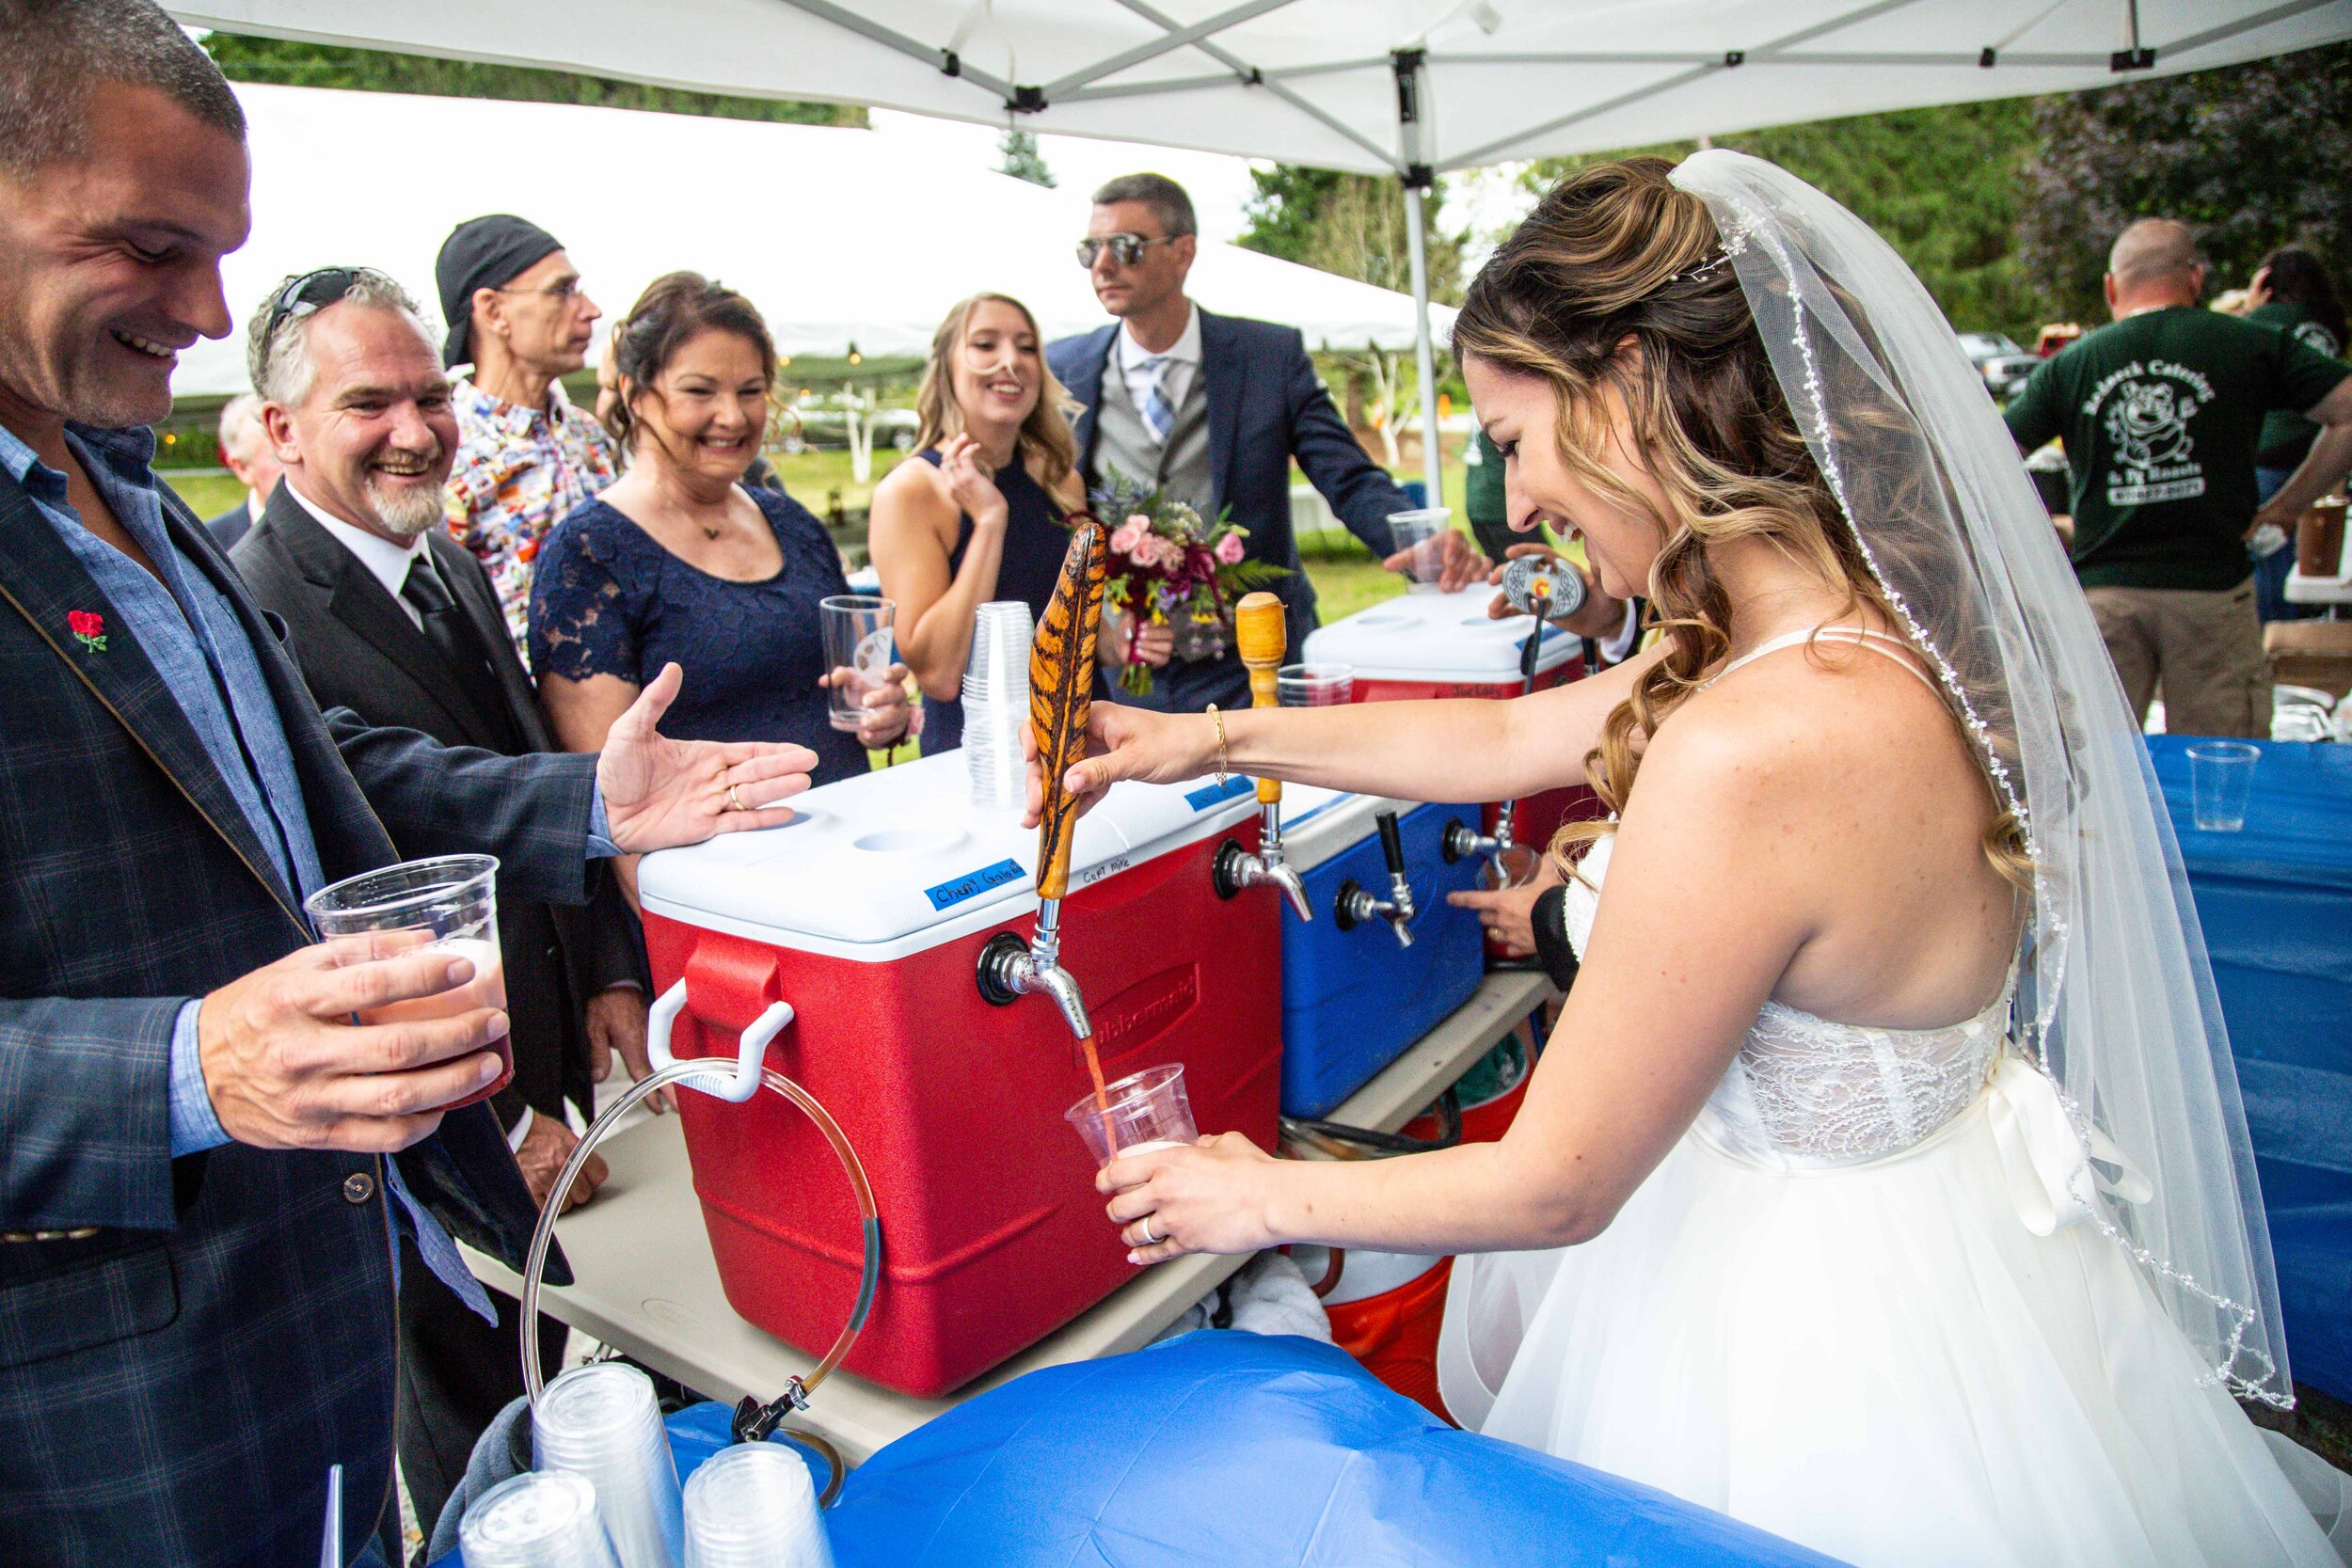 Backyard Homebrew Wedding in Branchville NJ by Dan Schenker Photography-32.jpg